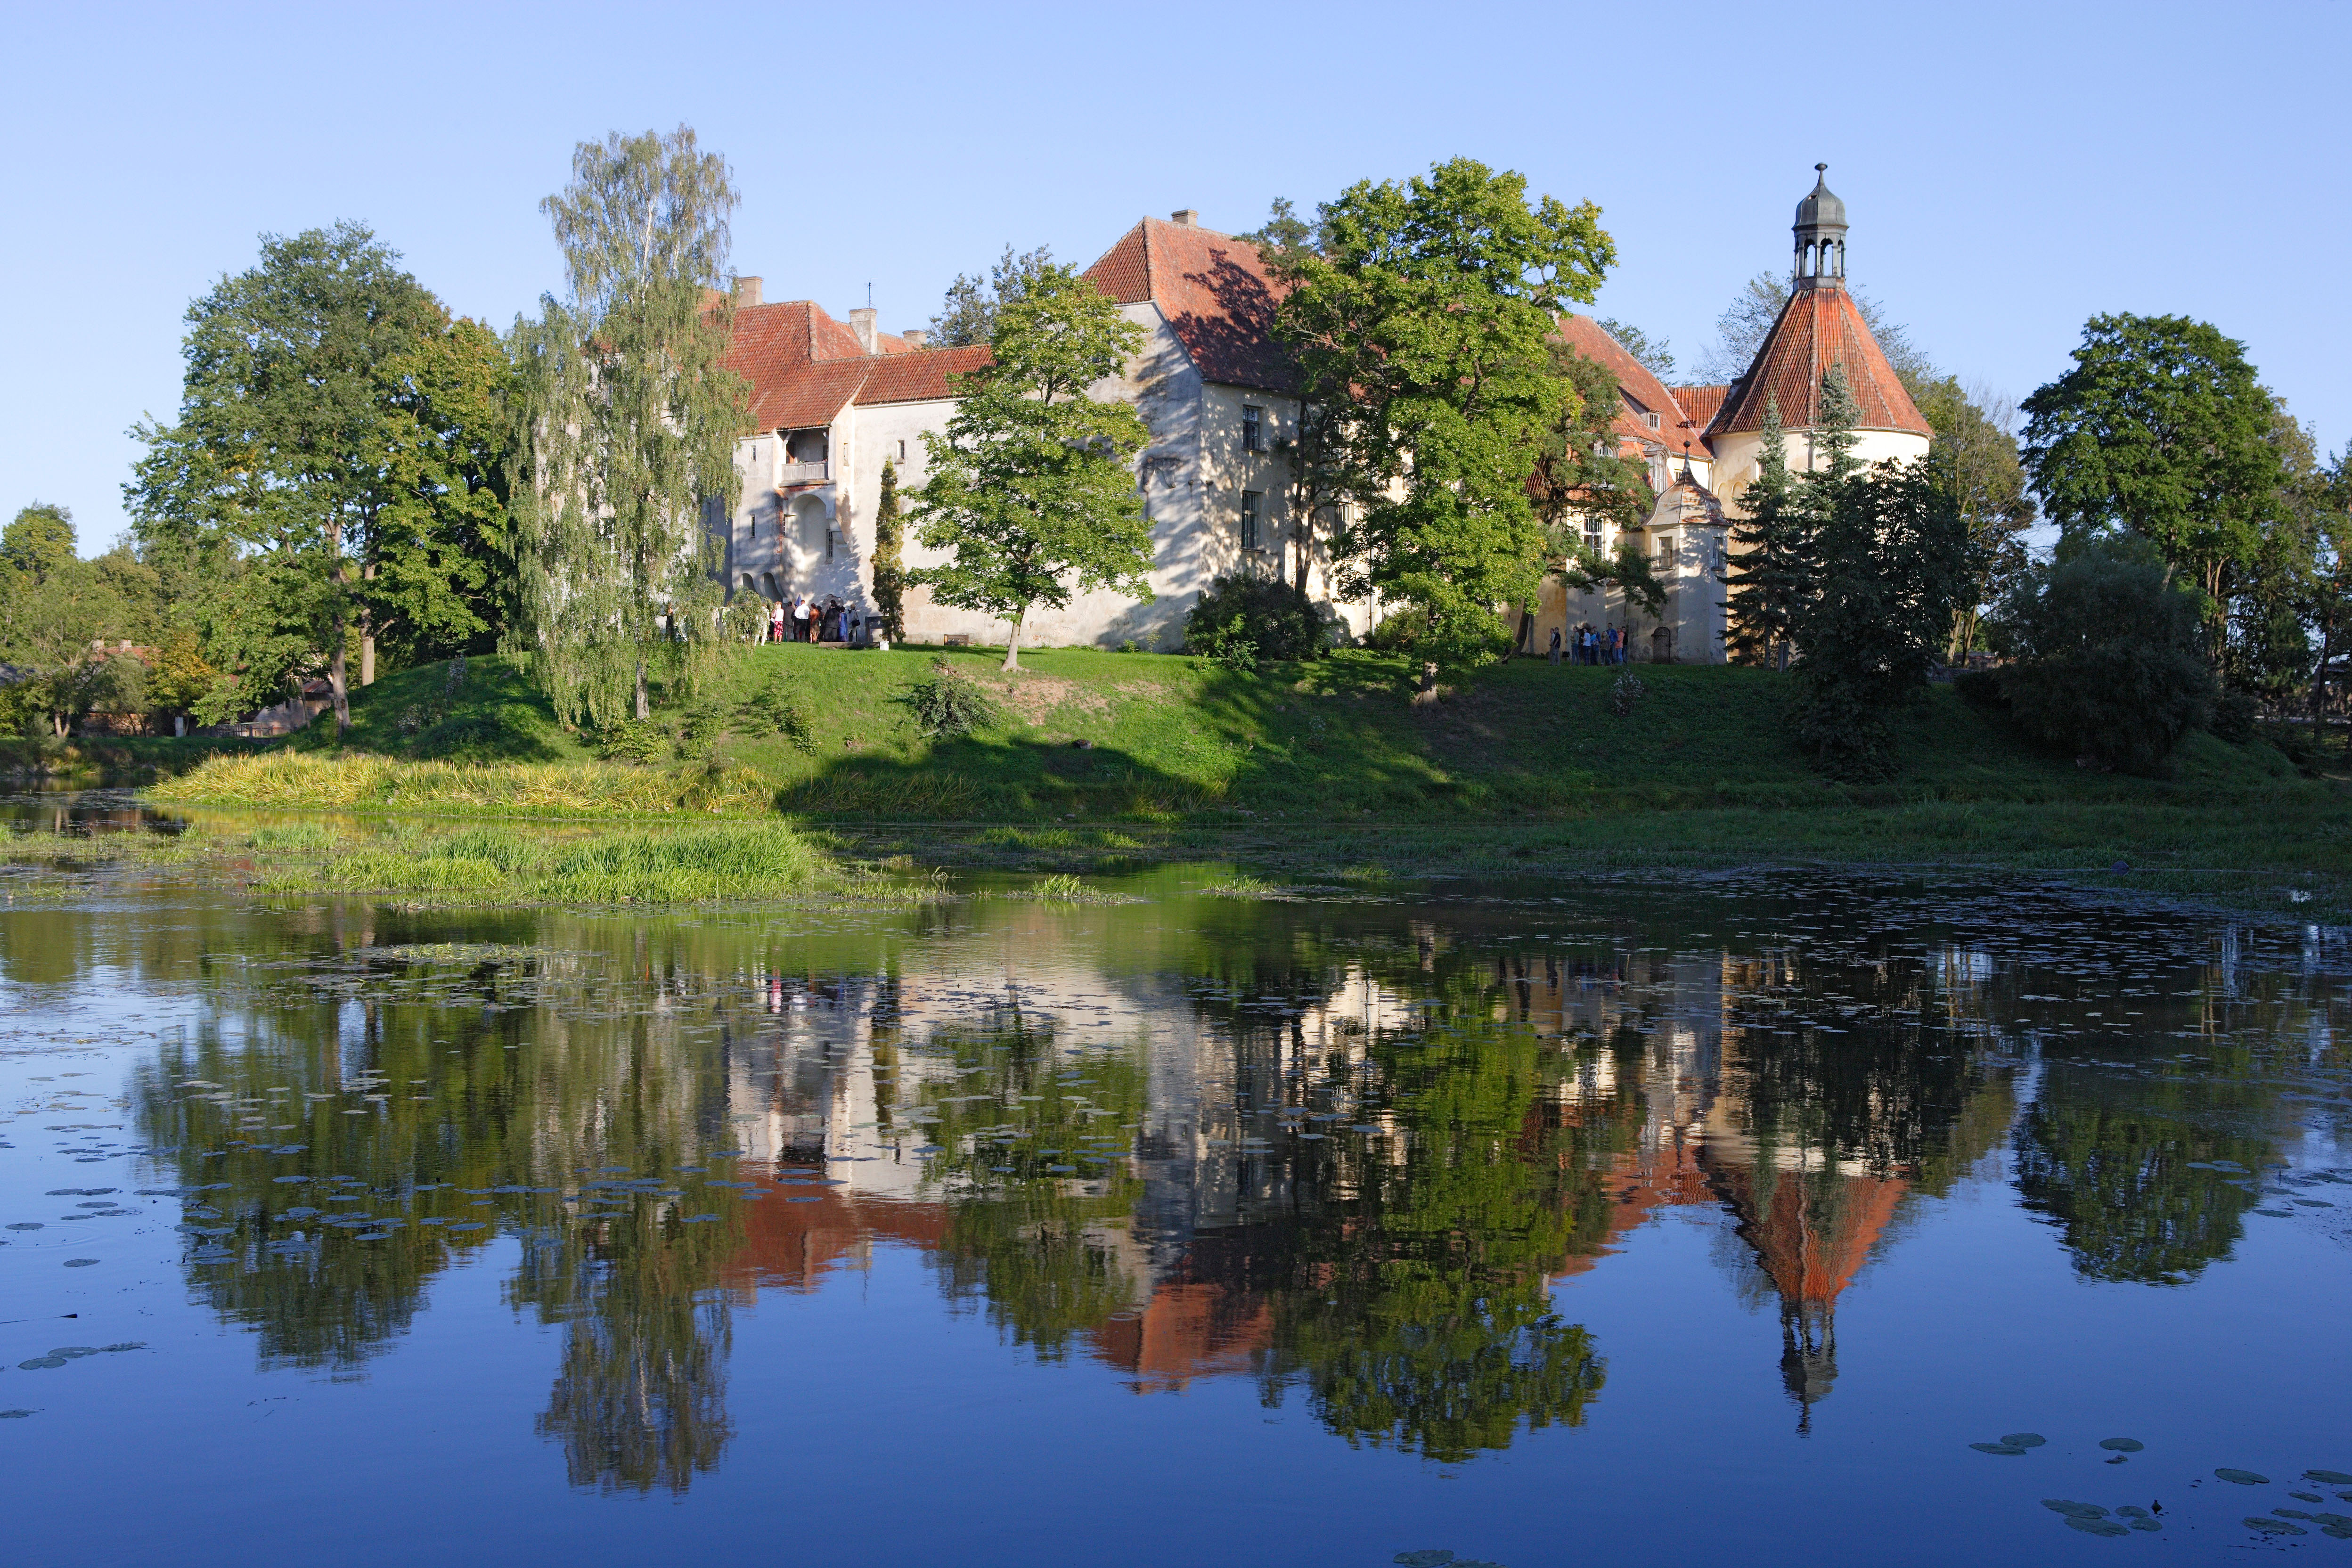 Genial Latvia Nominated As The Most Beautiful Country In The World